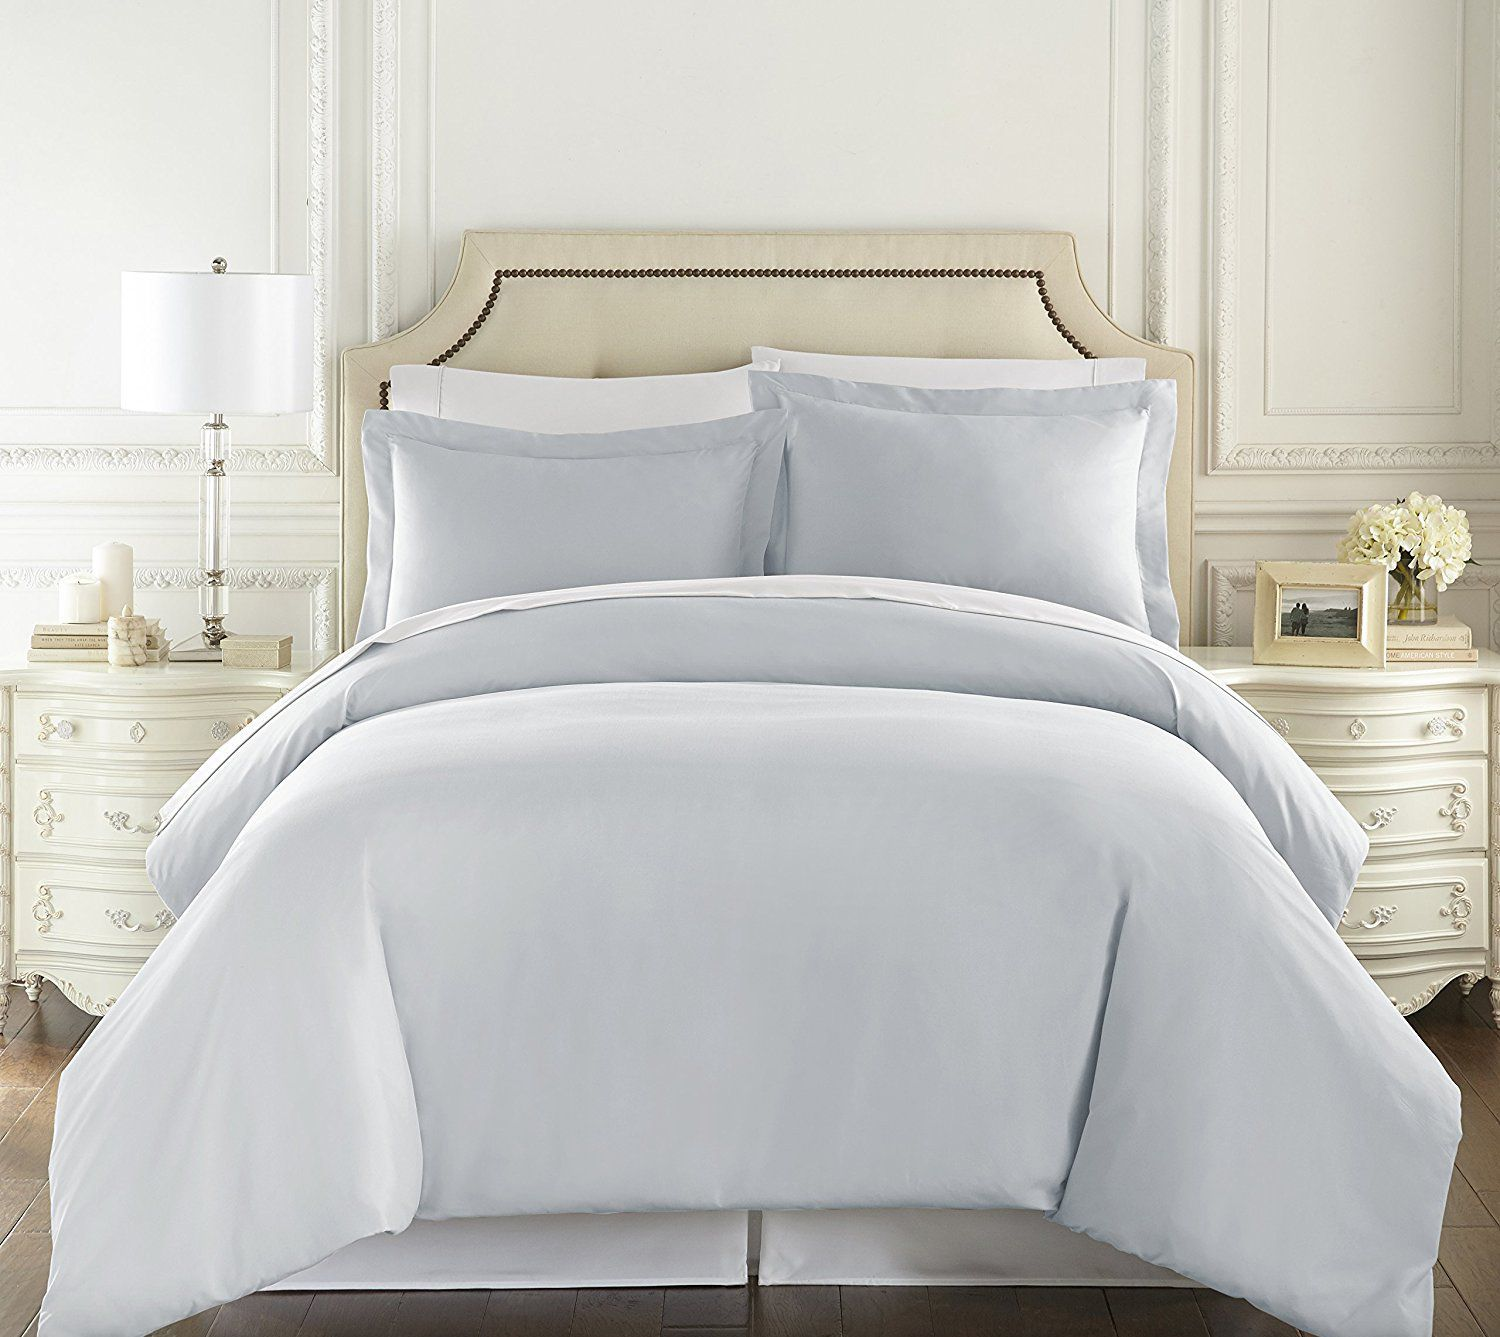 Hc Collection Hotel Luxury Duvet Cover Set Queen Size